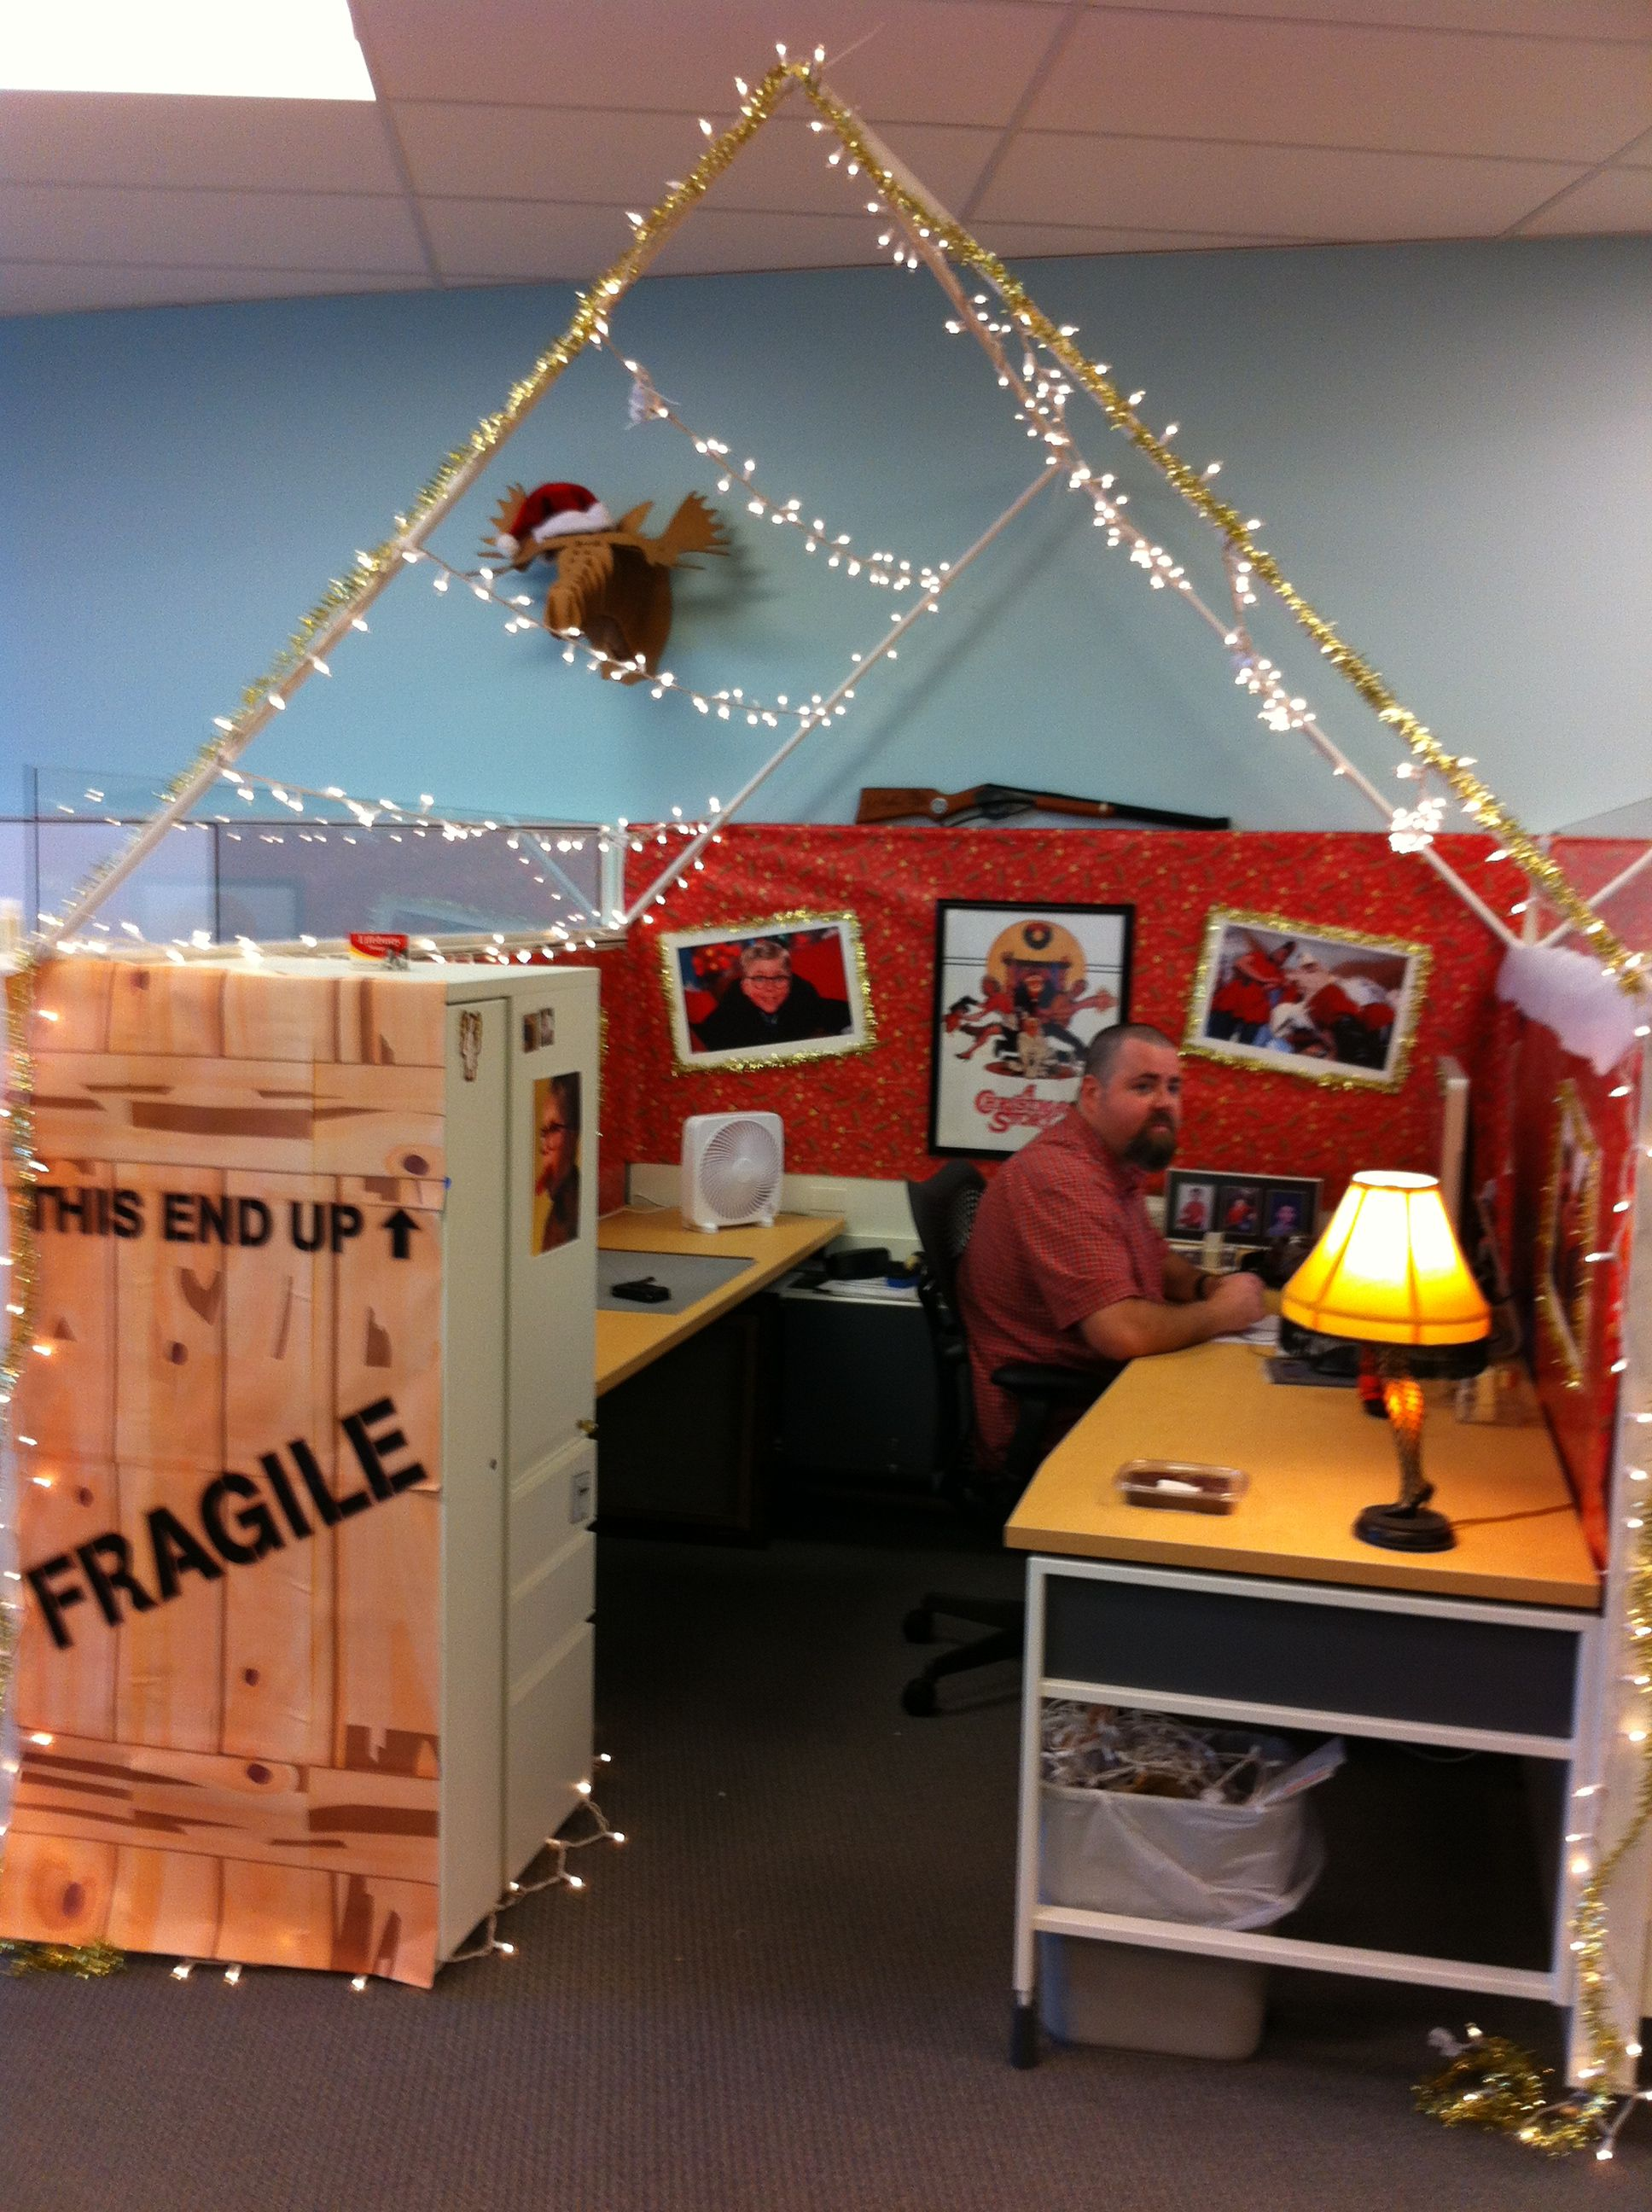 during our holiday cube decorating contest the winner decked his out in full a christmas story glory complete with a leg lamp